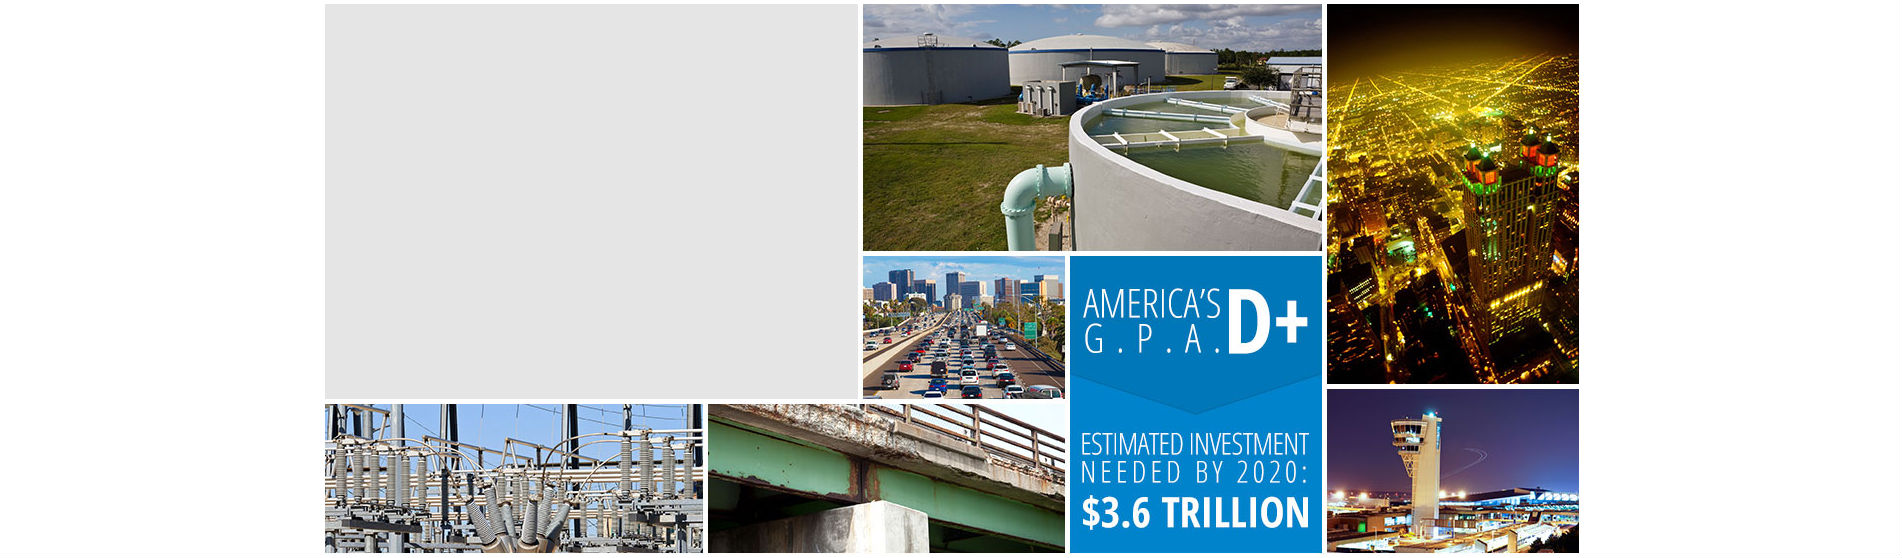 America's G.P.A. D+ estimated investment needed by 2020 $3.6 trillion